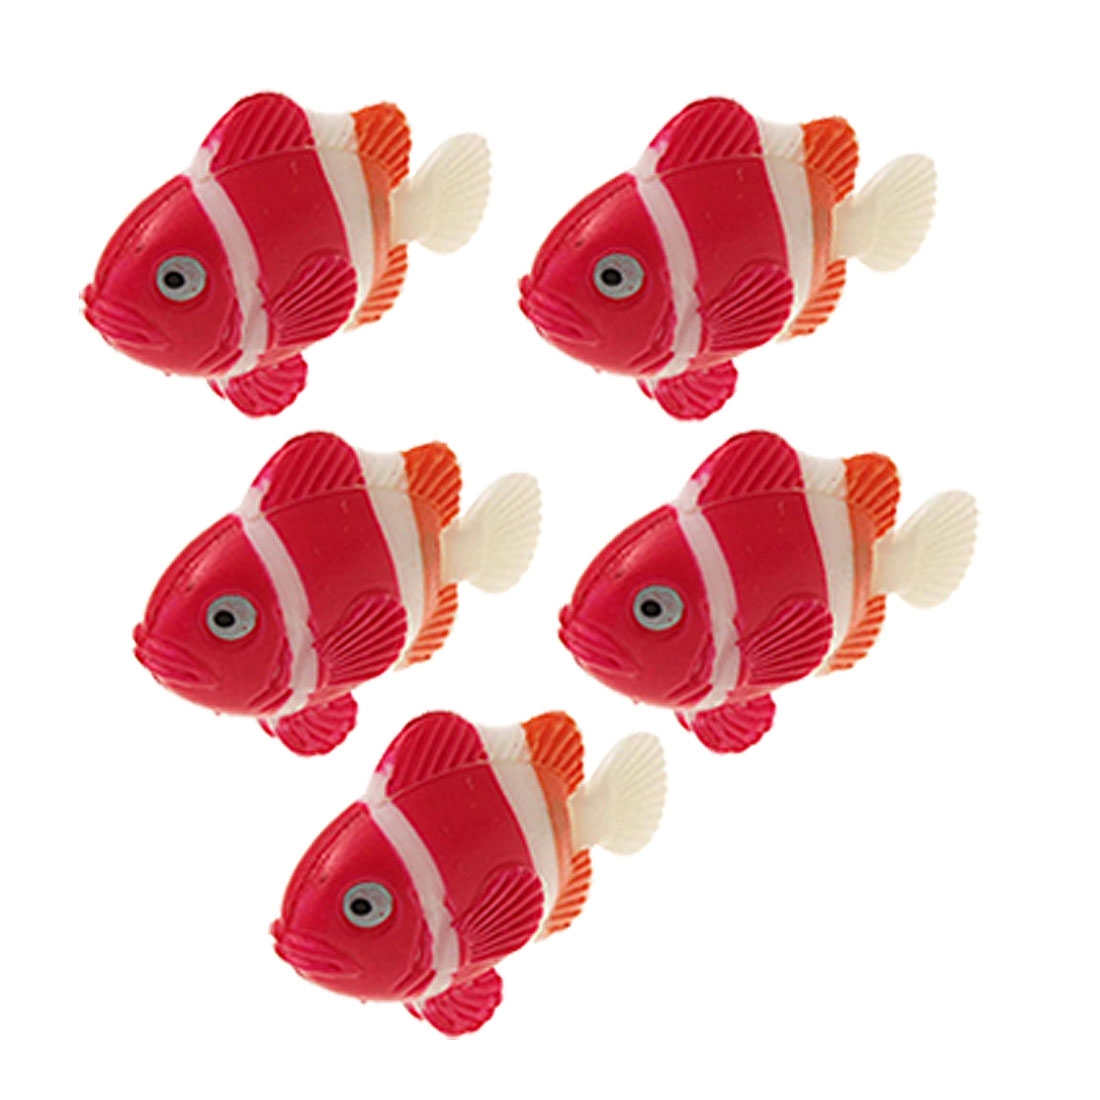 Five Plastic Slim Fish Aquarium Tank Ornament